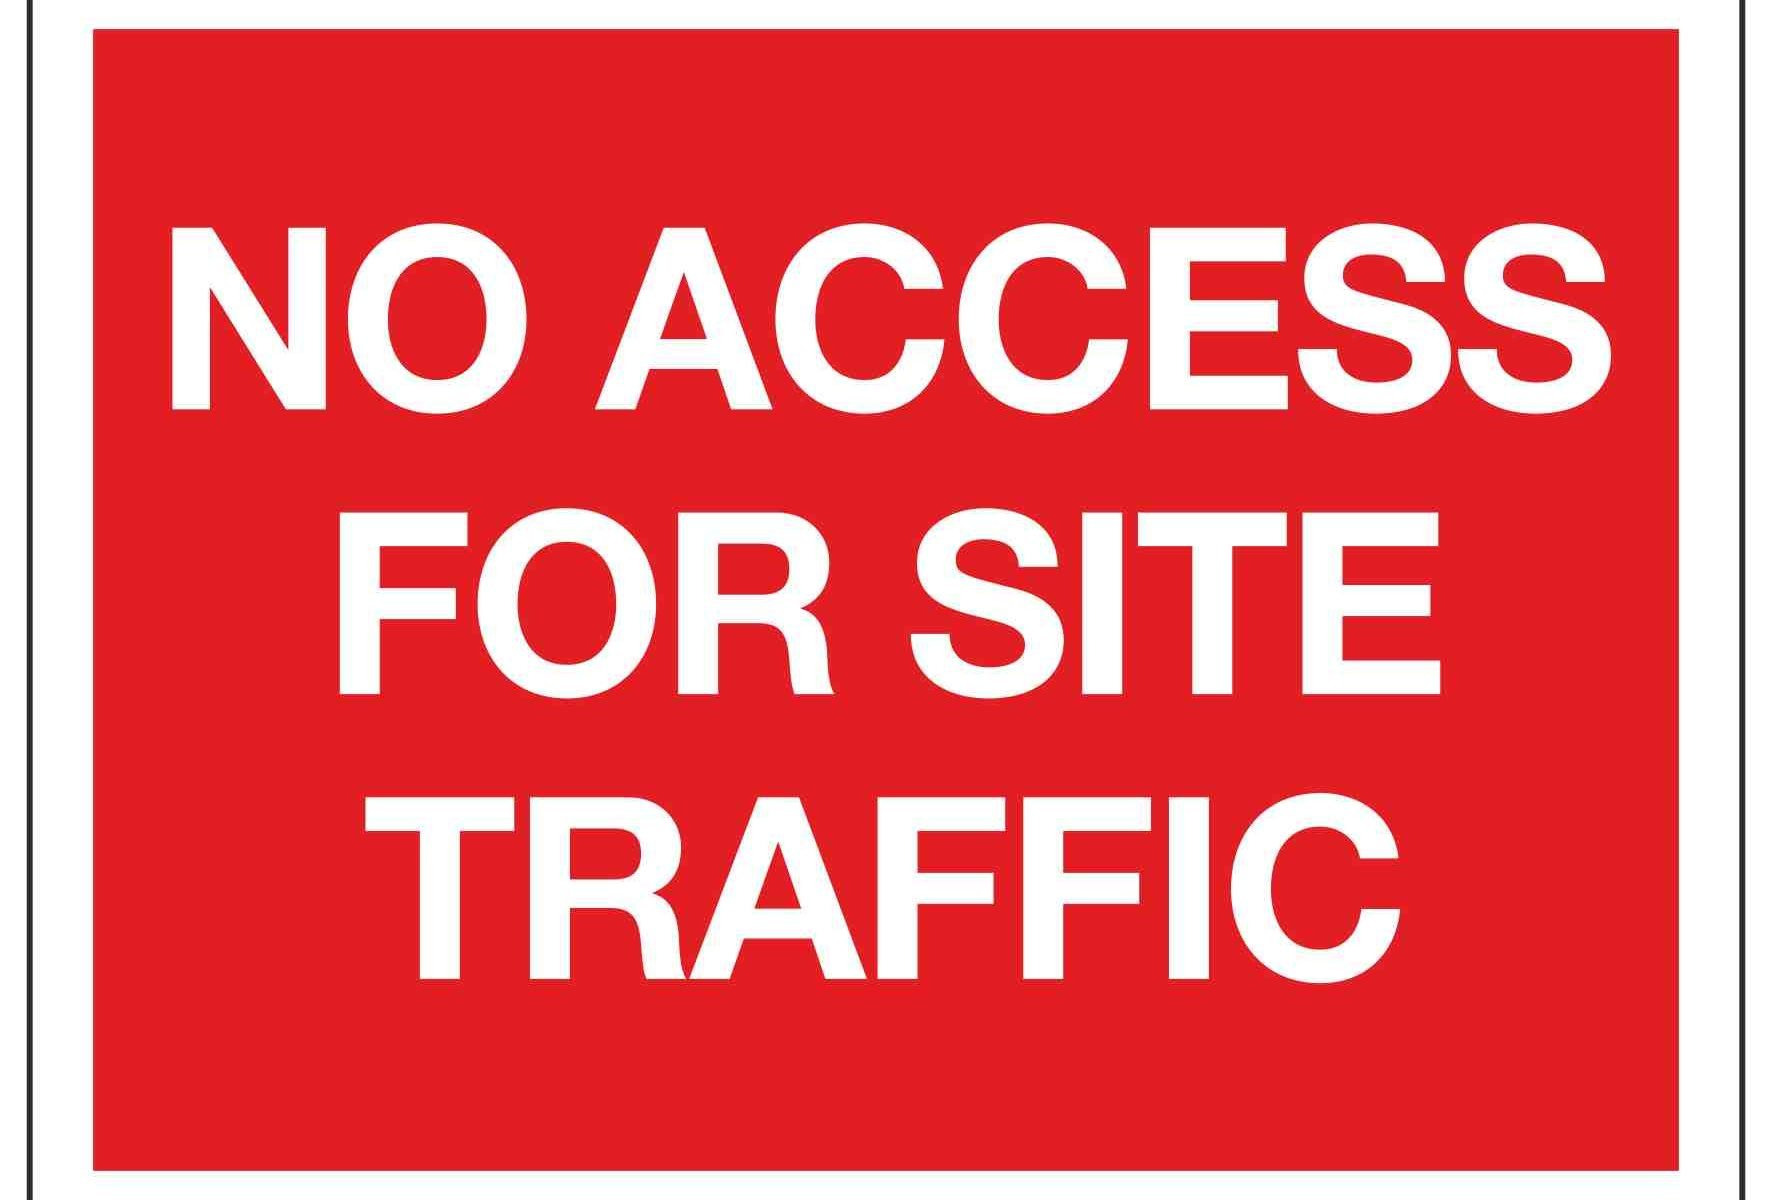 NO ACCESS FOR SITE TRAFFIC